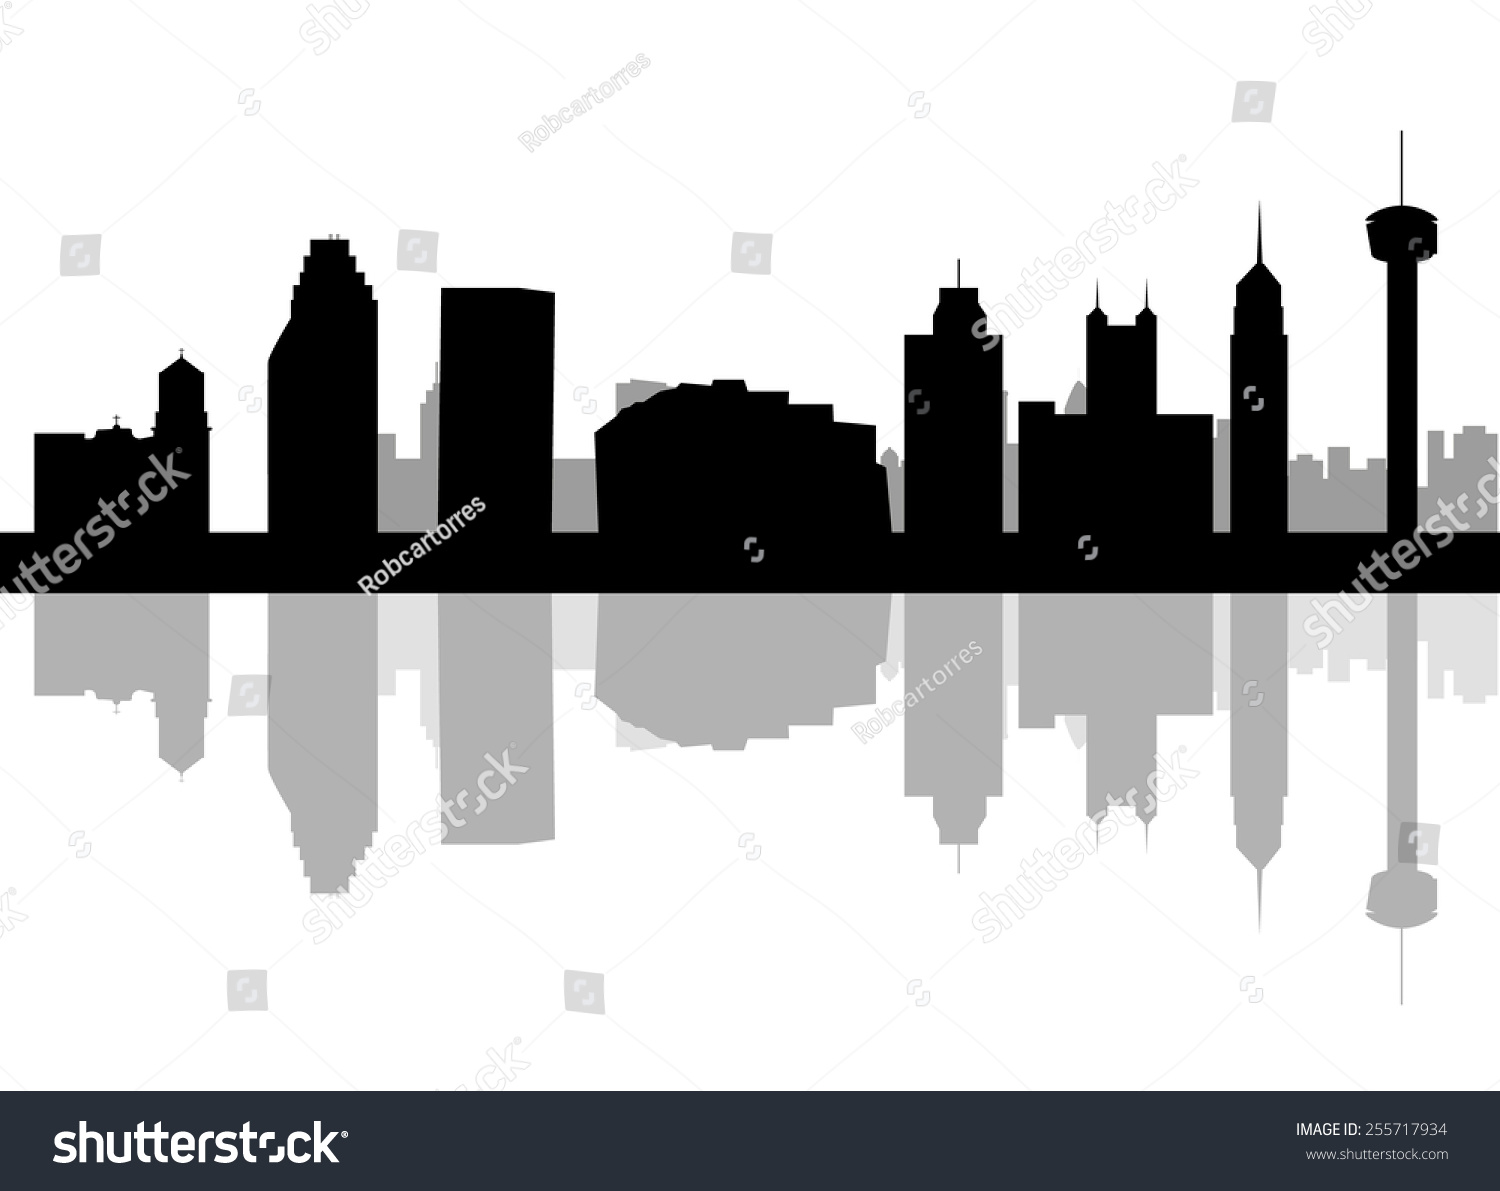 City Of Tulsa Skyline Outline Wiring Diagrams Isolated Ac Voltage Spans 0vac To 280vac Powersupplycircuit San Antonio Texas Detailed Vector Stock Downtown Drawing